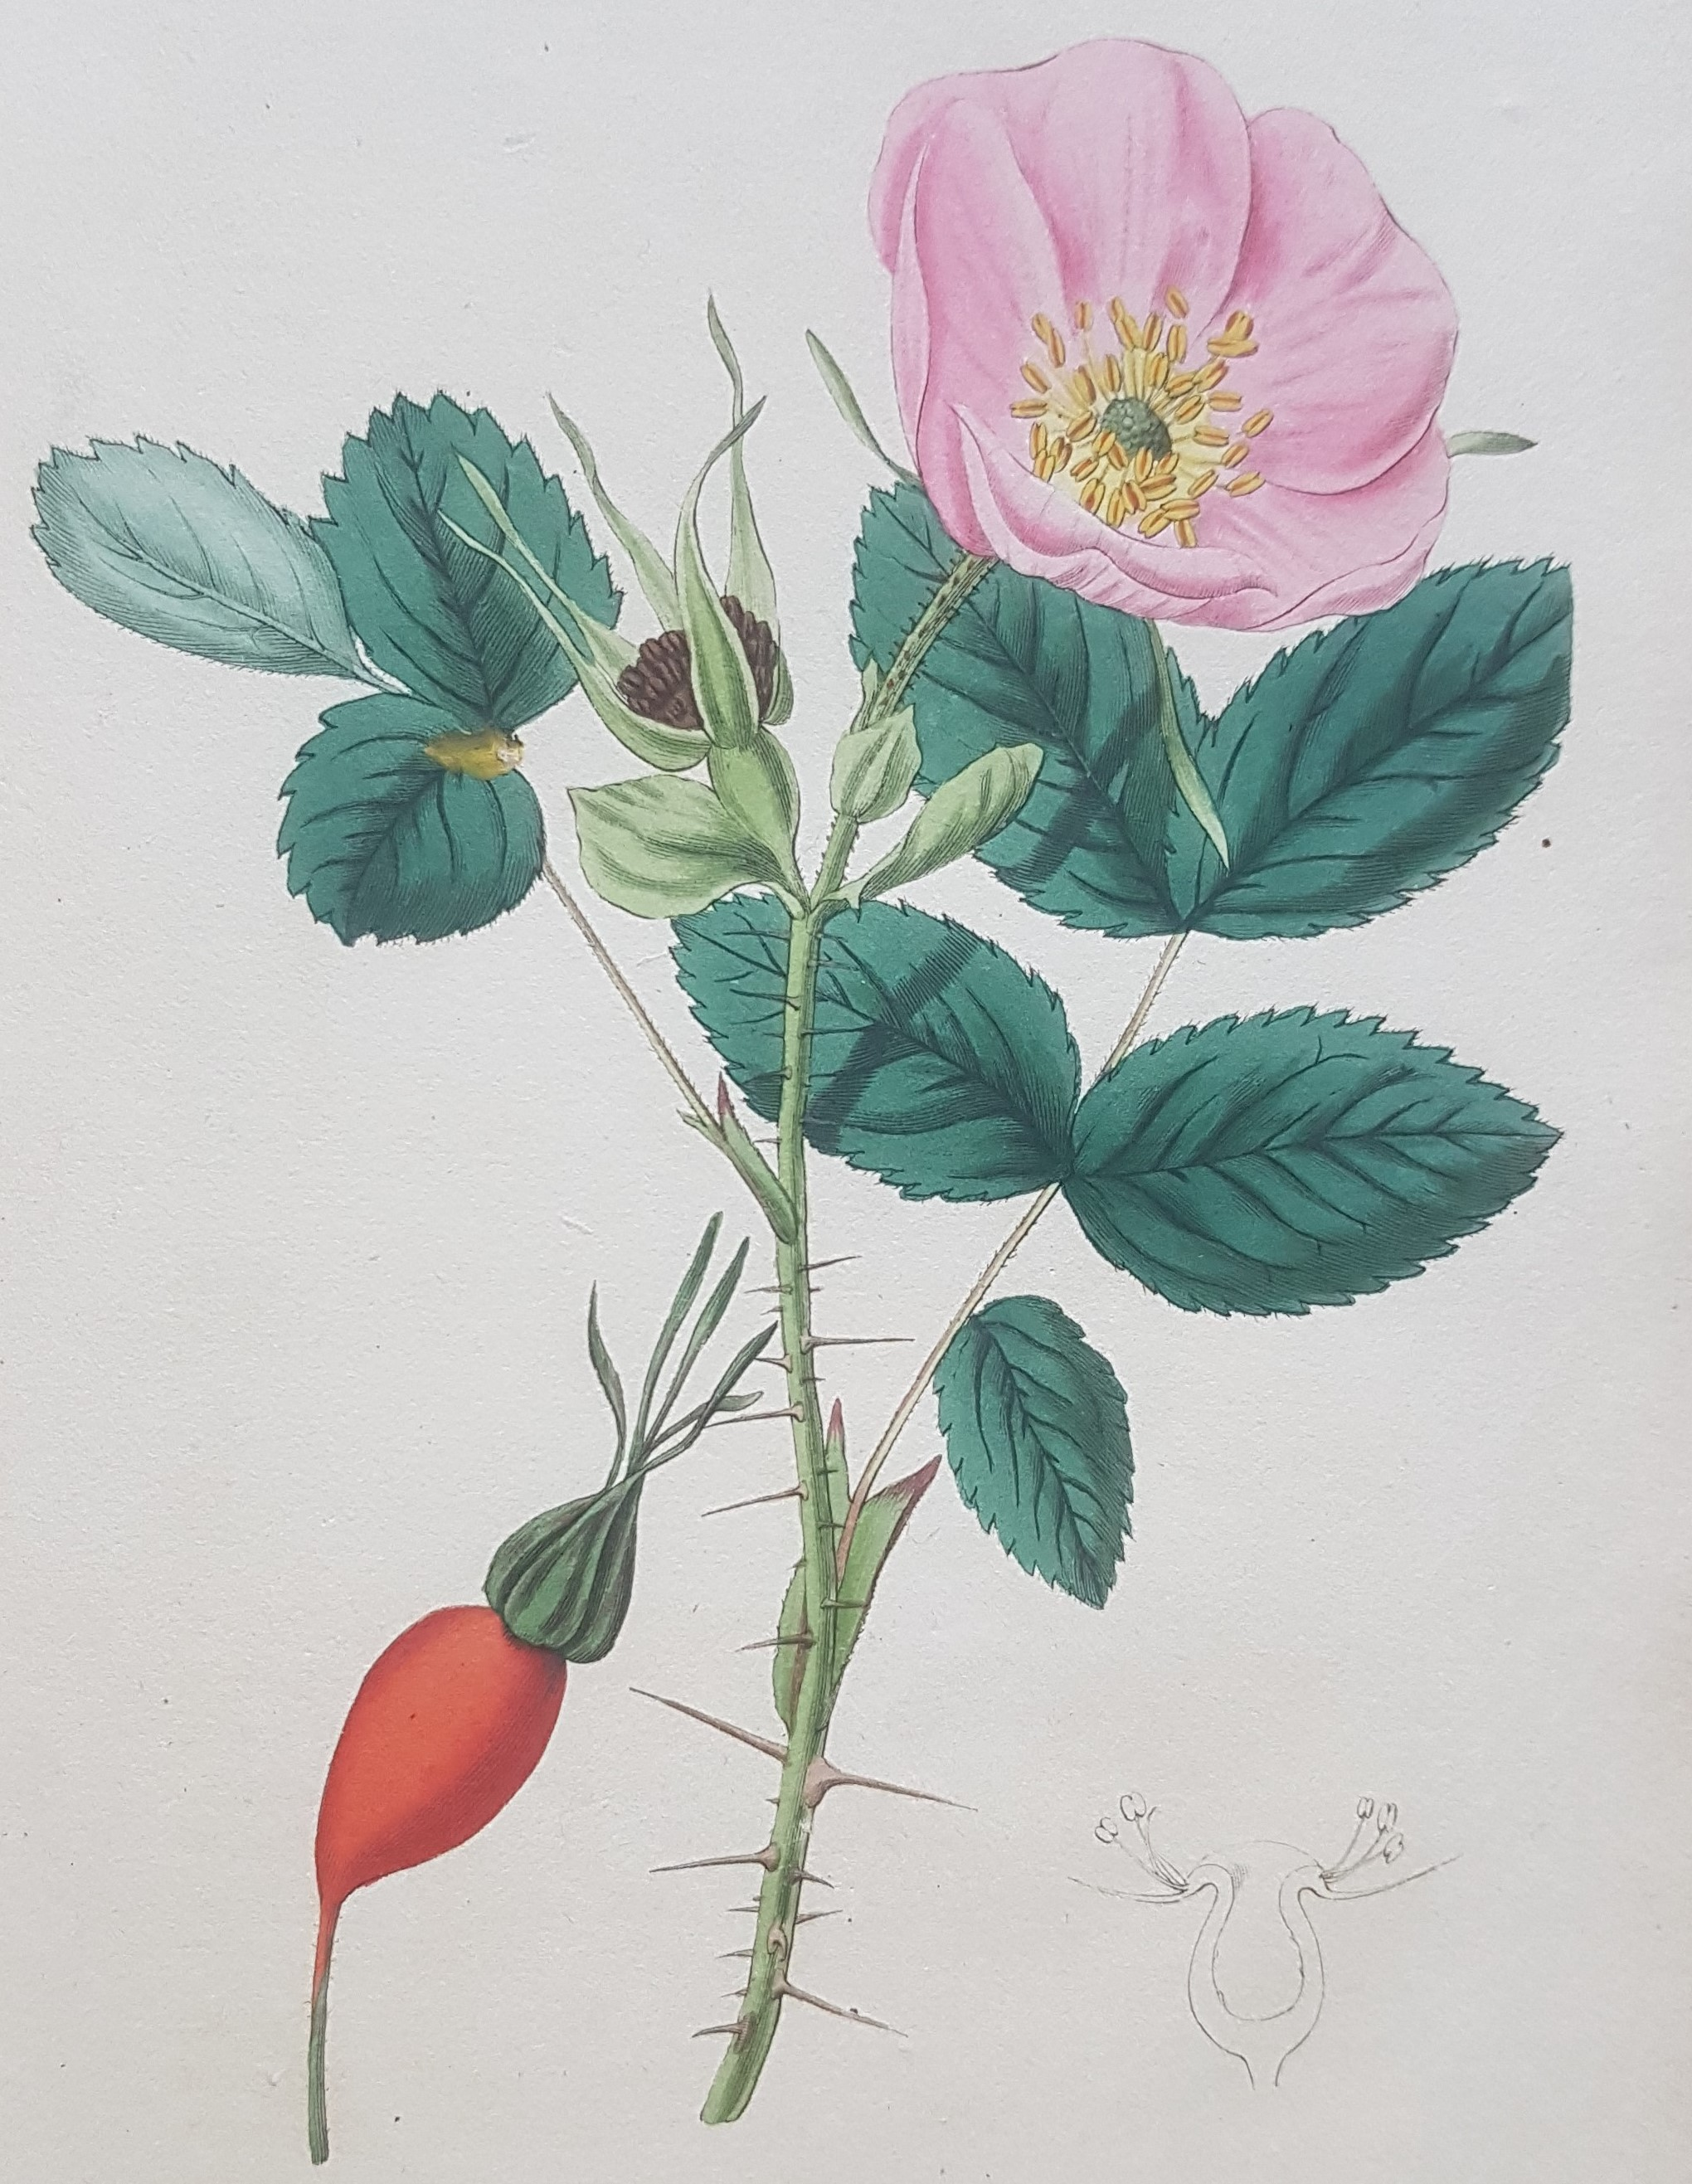 Rose illustration from 'Rosarum monographia'.